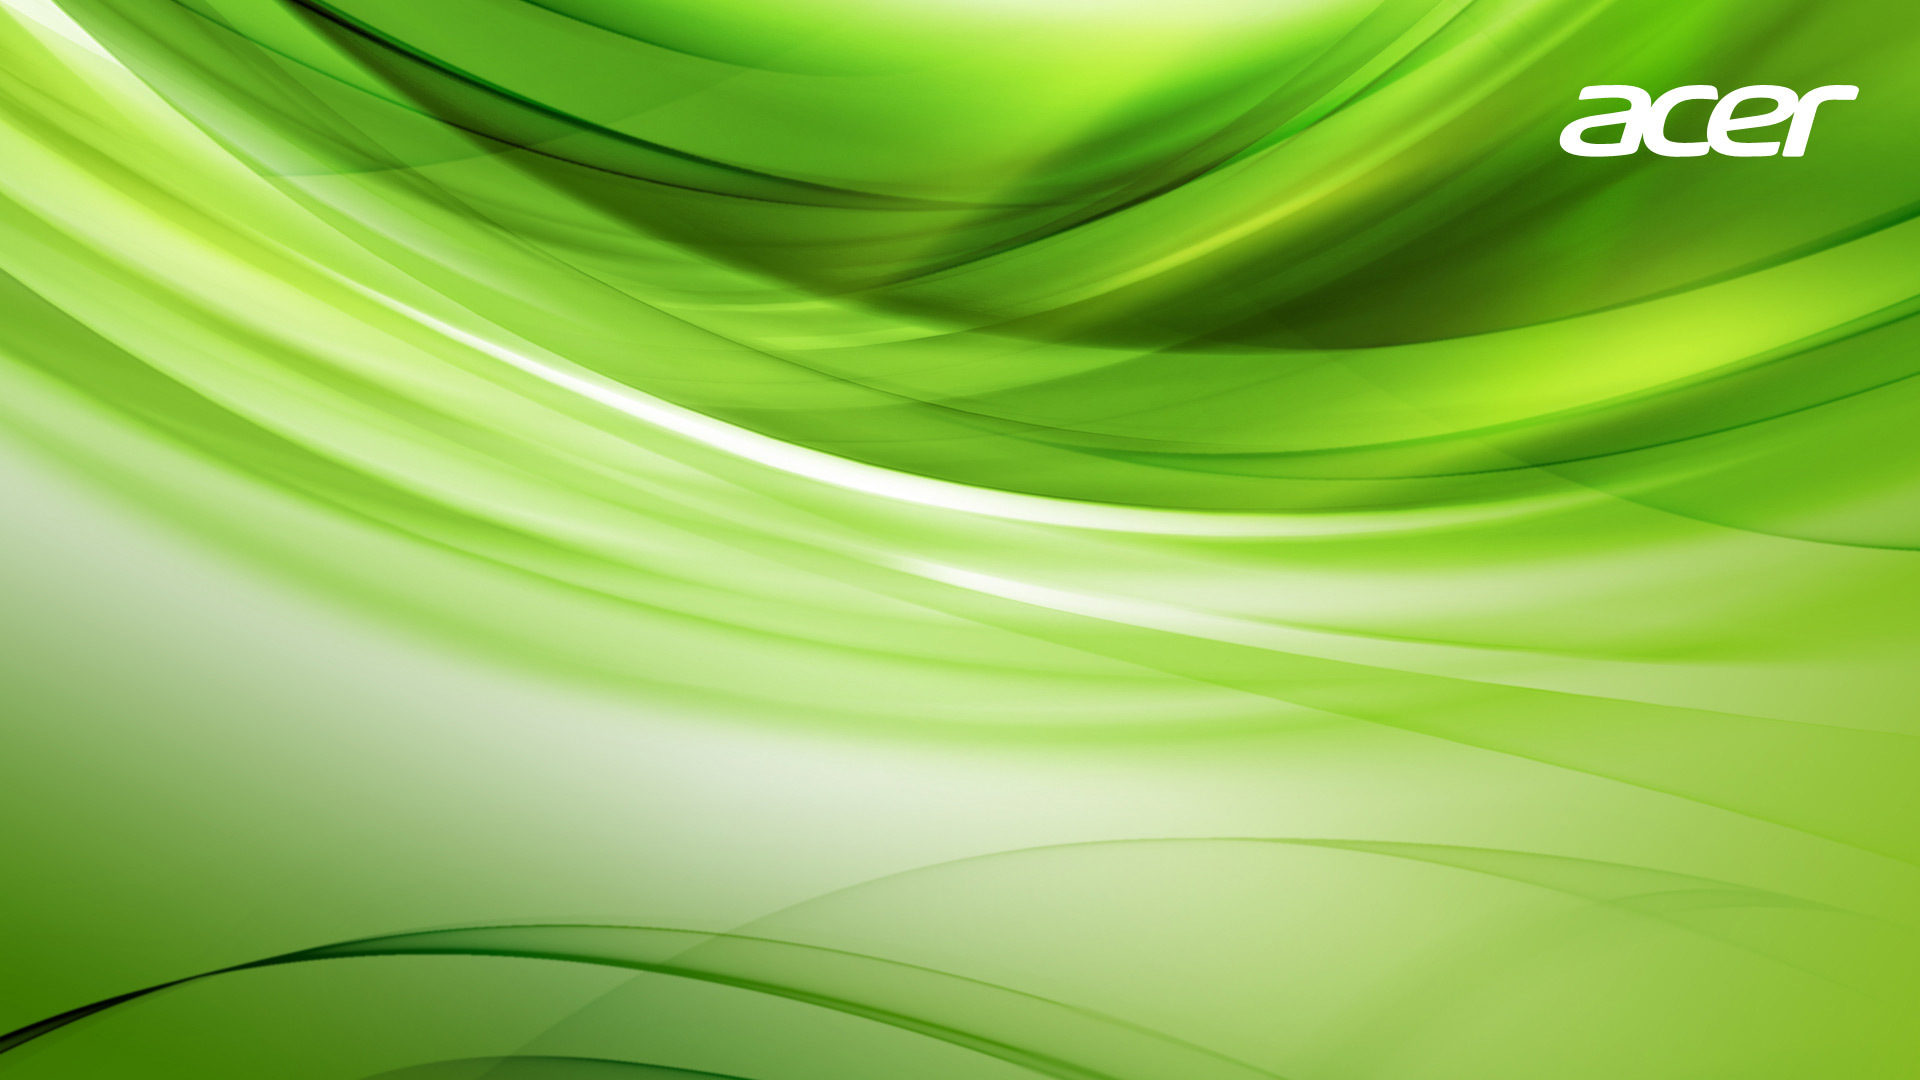 acer acer wallpaper green wallpaper screensaverjpg 1920x1080